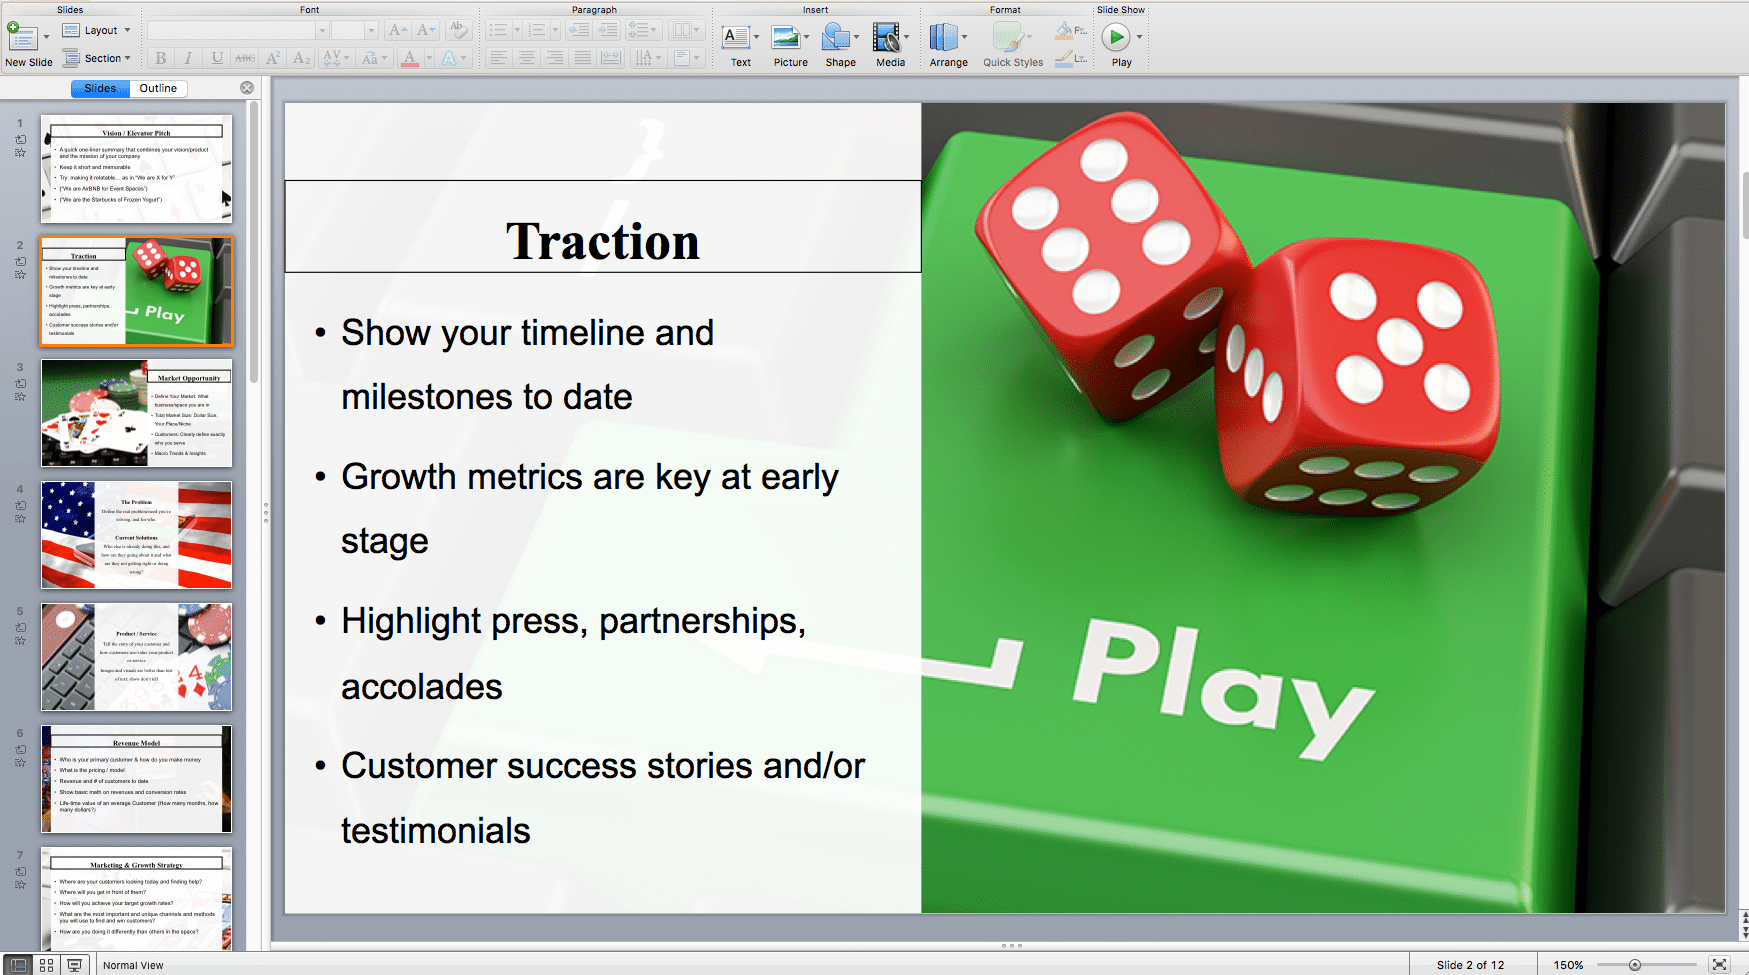 Online poker business plan template